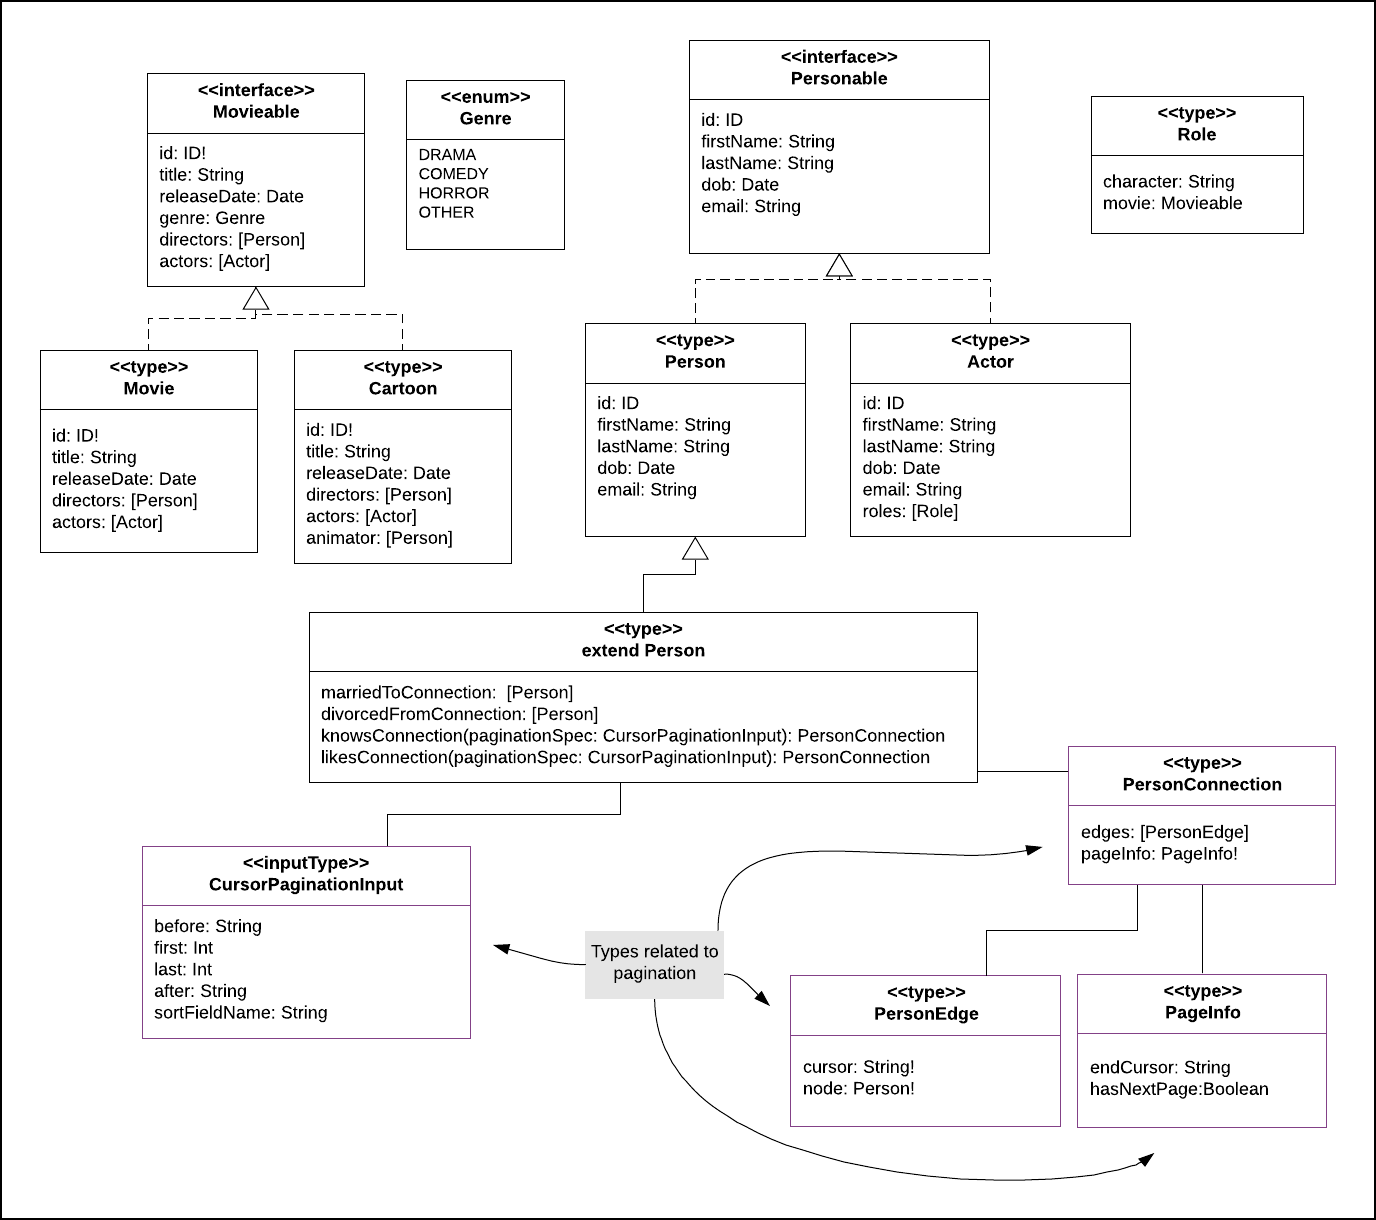 Figure 3: A description of some of the GraphQL interfaces, types and inputTypes represented in UML (Unified Modeling Language)